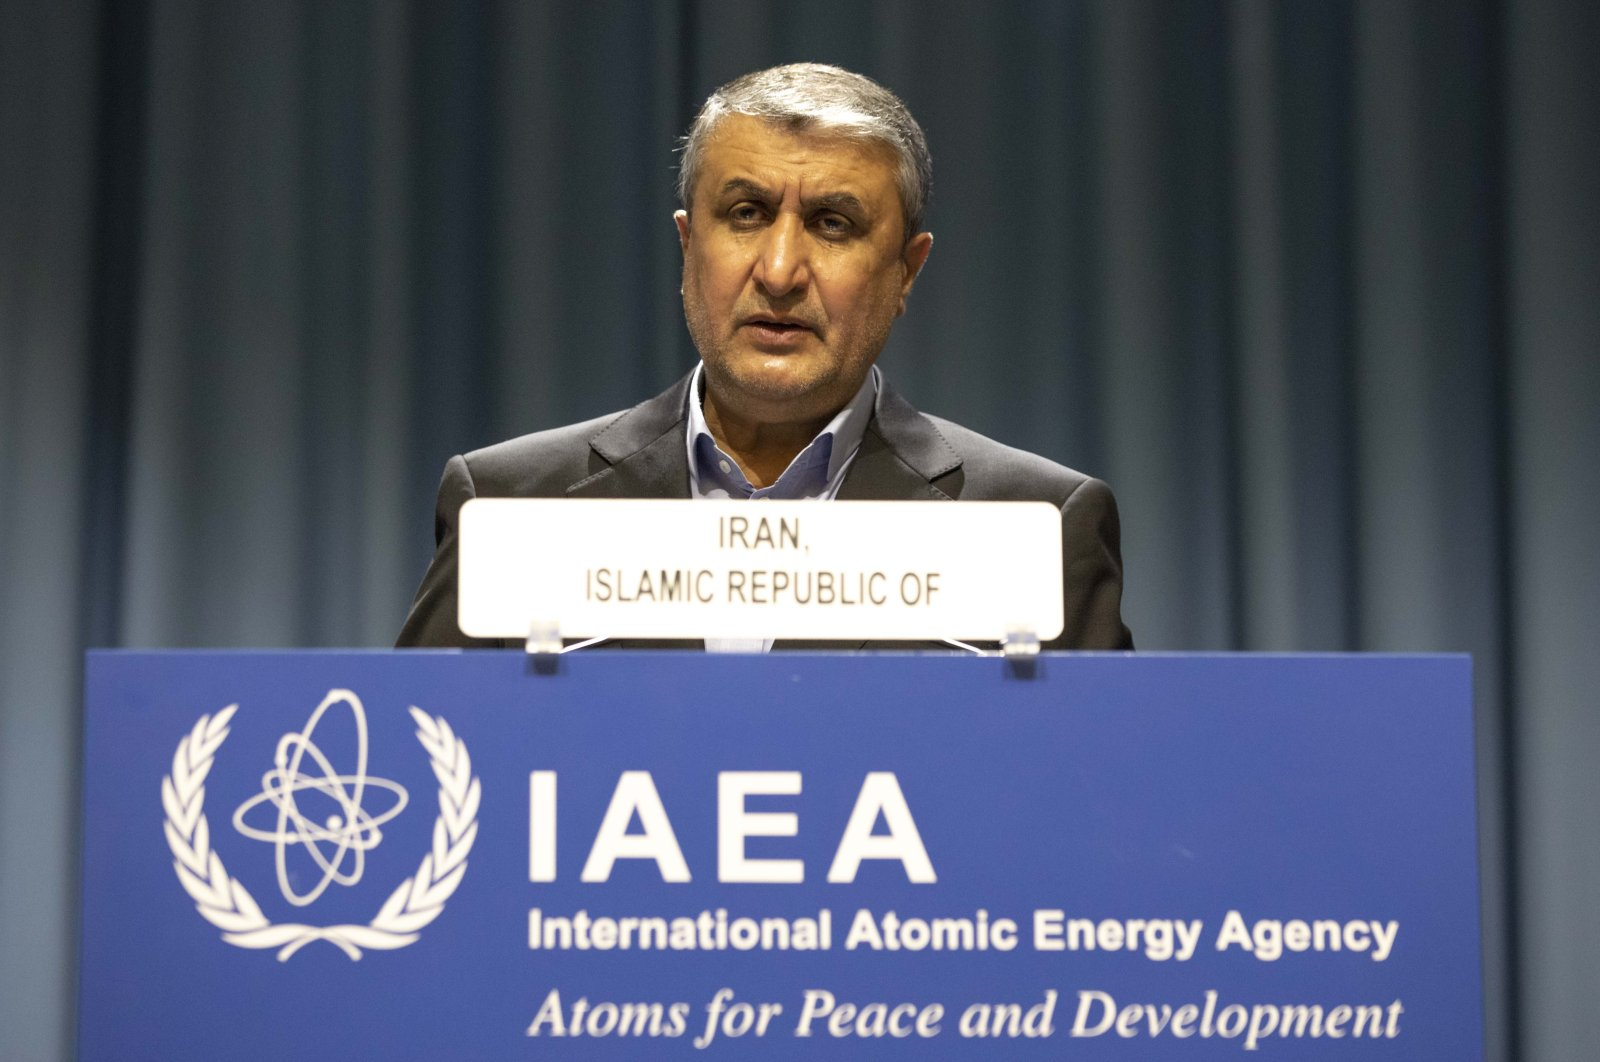 Mohammad Eslami, new head of Iran's nuclear agency (AEOI) talks on stage at the International Atomic Energy's (IAEA) General Conference in Vienna, Austria, Sept. 20, 2021. (AP Photo)